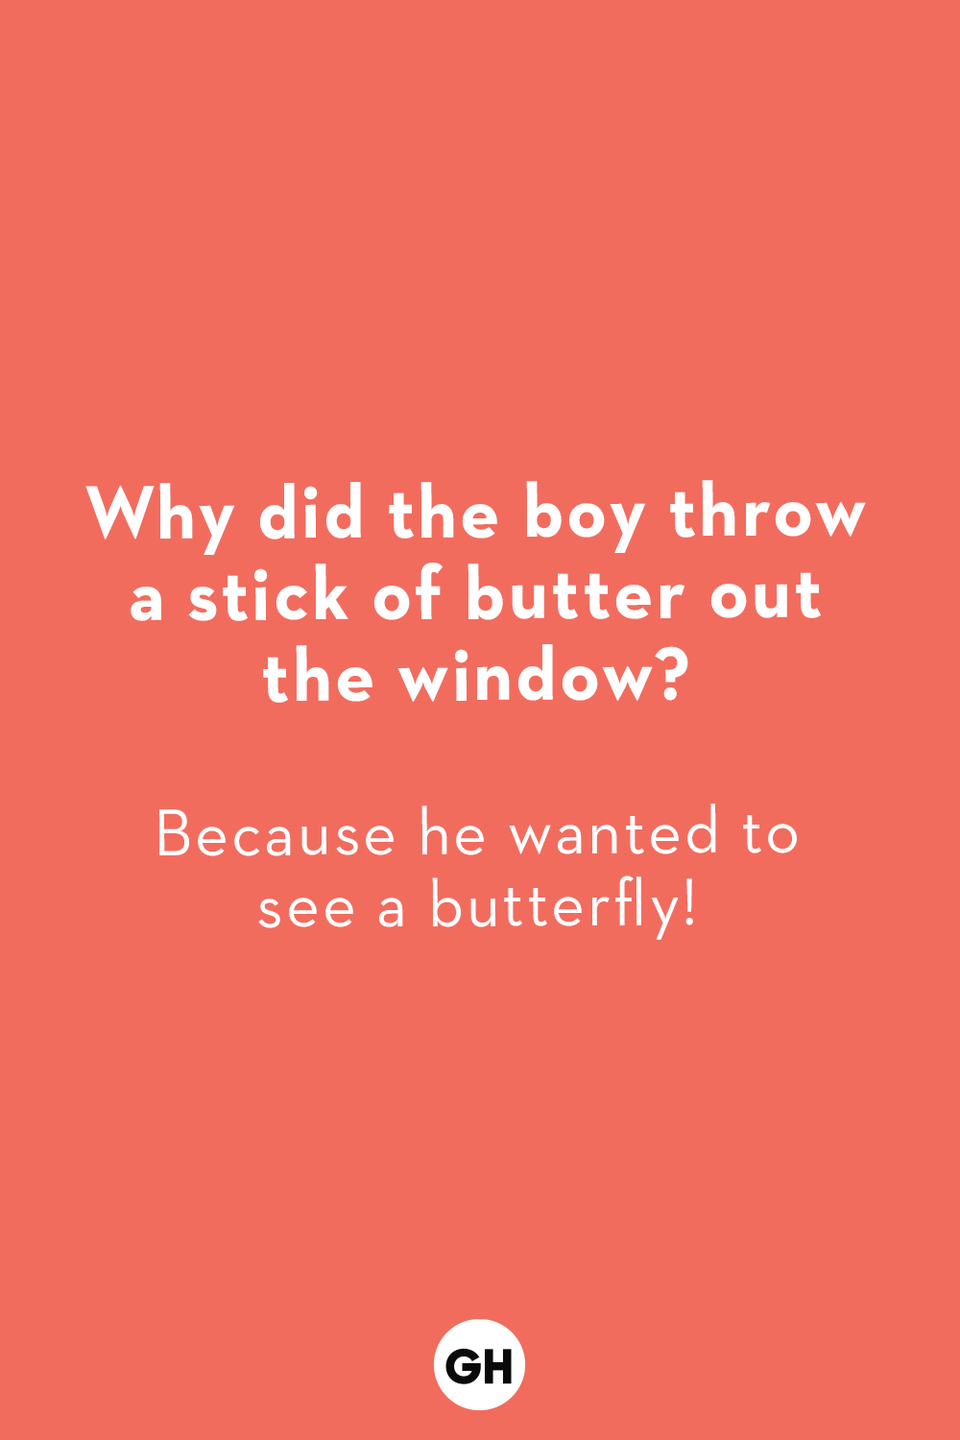 <p>Because he wanted to see a butterfly!</p>